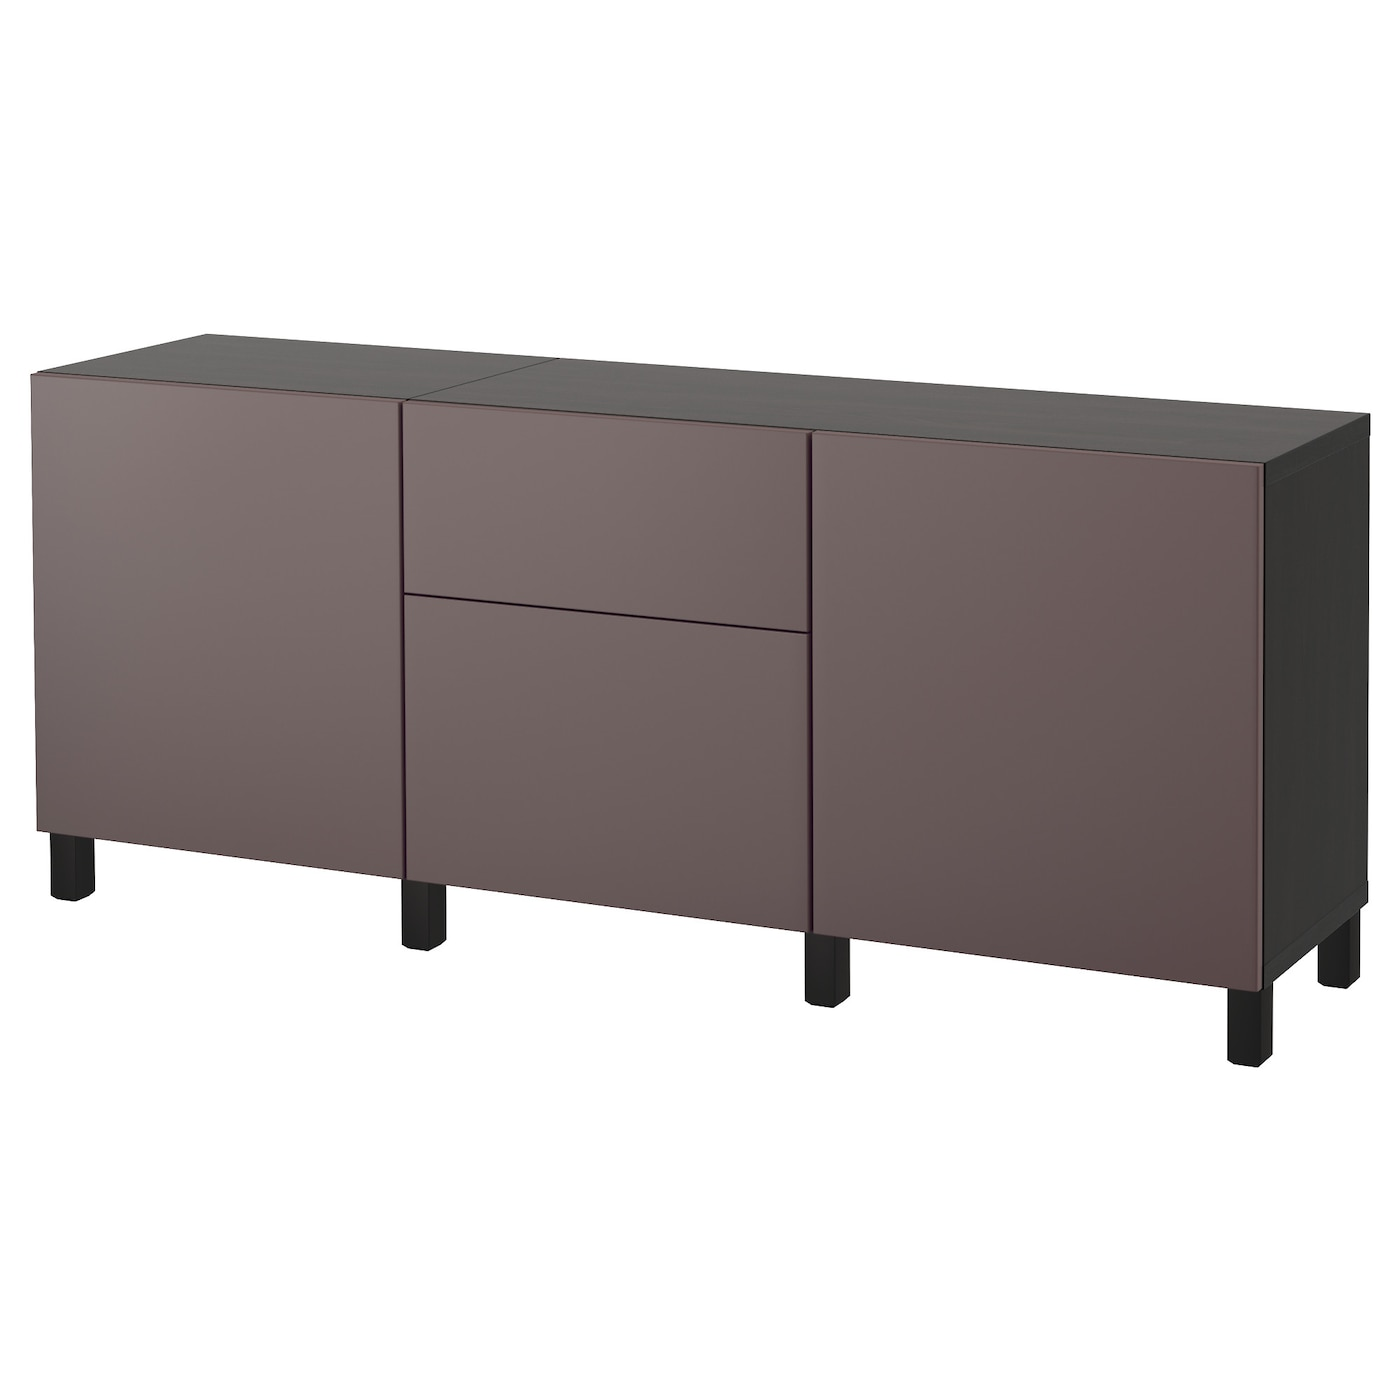 best combinaison rangement tiroirs brun noir valviken brun fonc 180x40x74 cm ikea. Black Bedroom Furniture Sets. Home Design Ideas